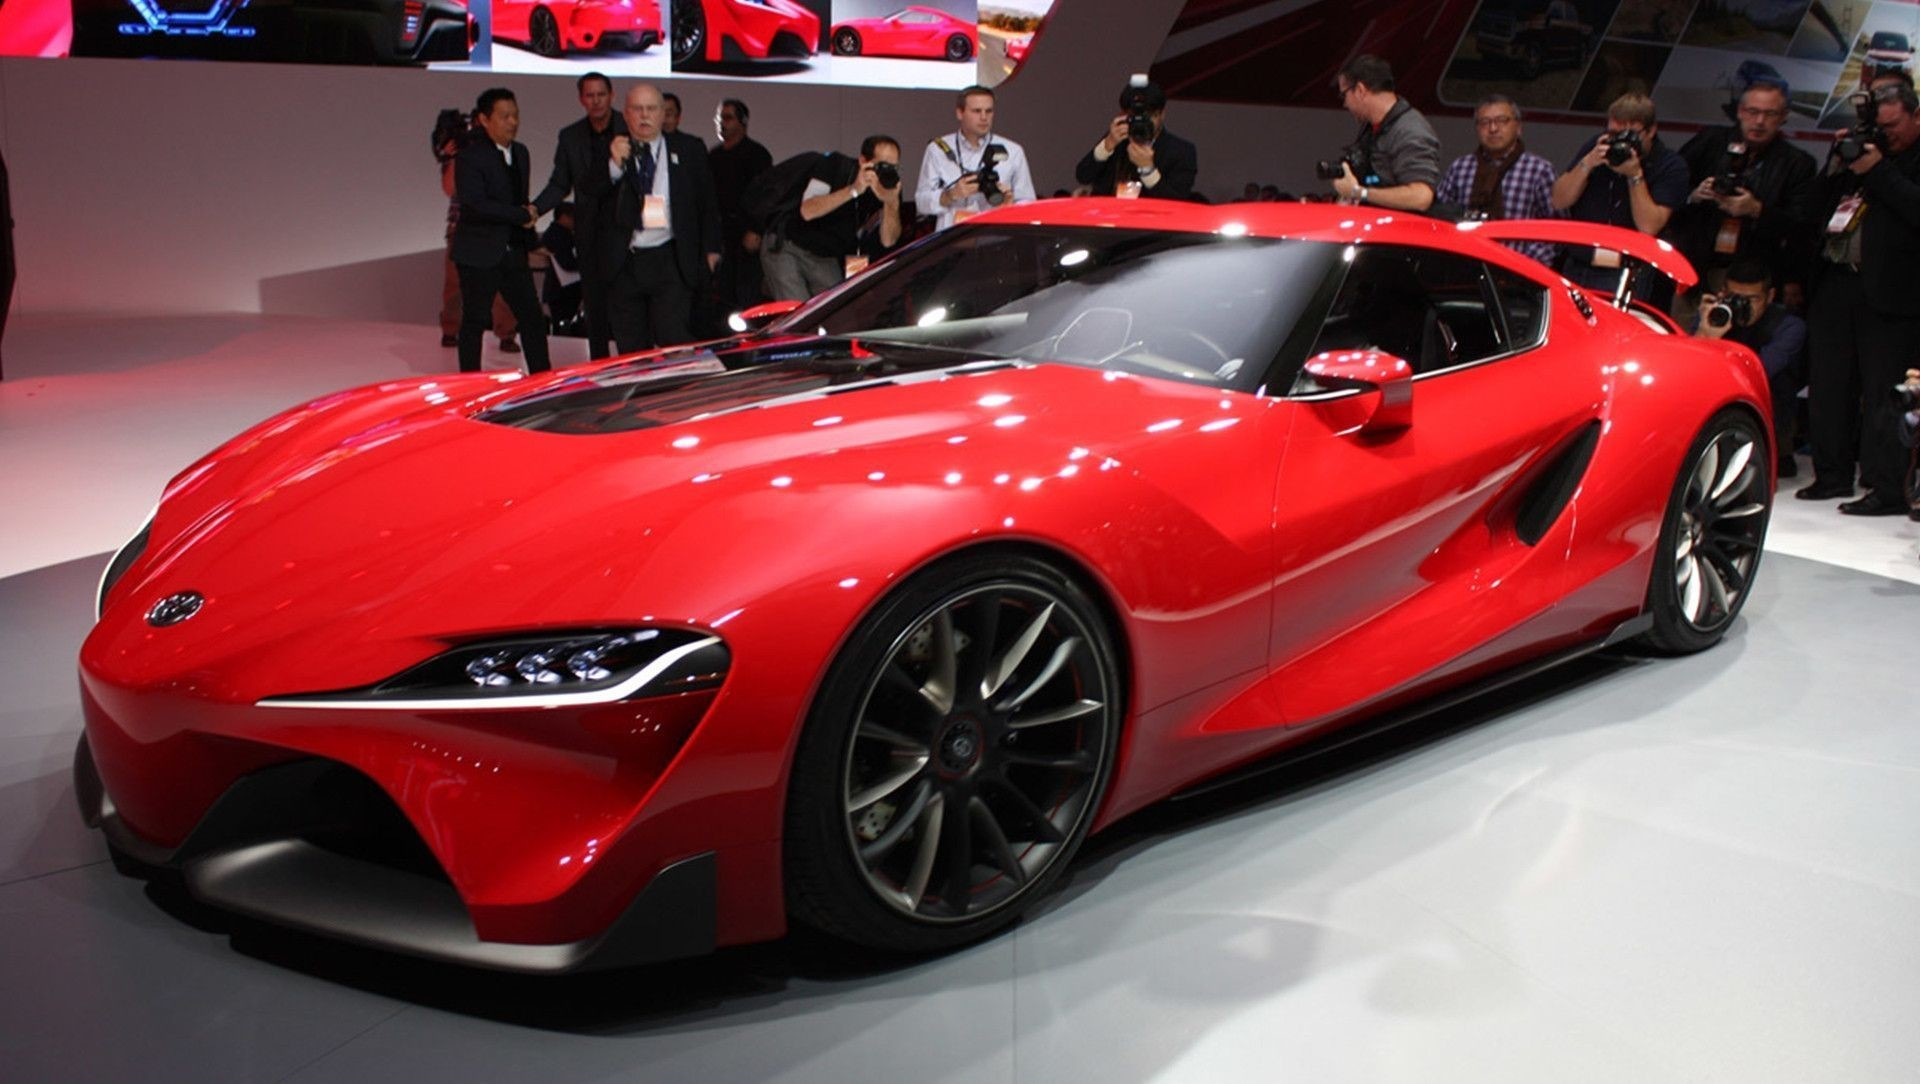 2017 Toyota FT1 Concept car wallpapers for mac – Latestcarwallpapers